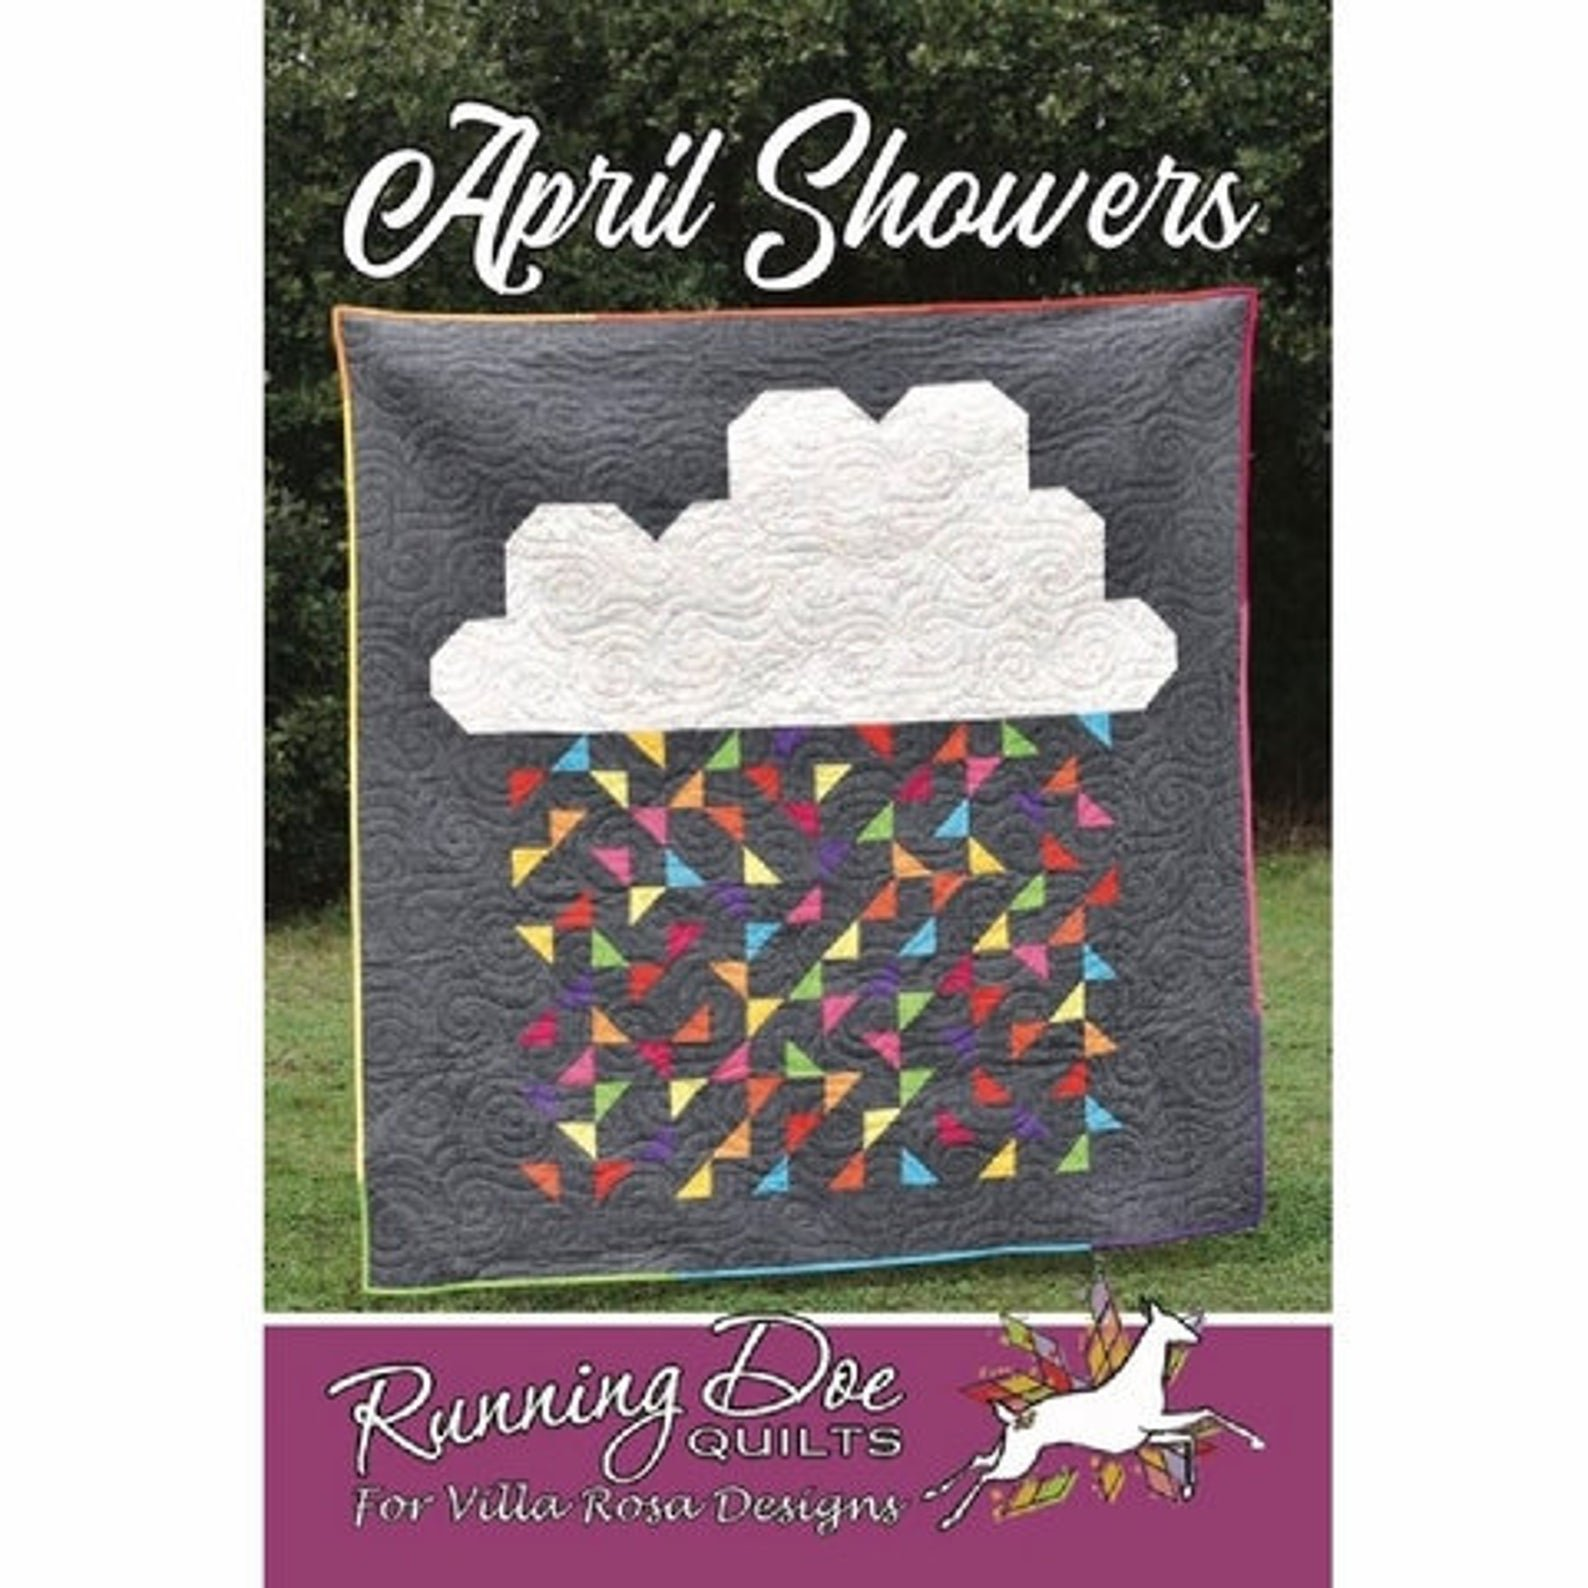 April Showers Quilt Pattern by Running Doe Quilts